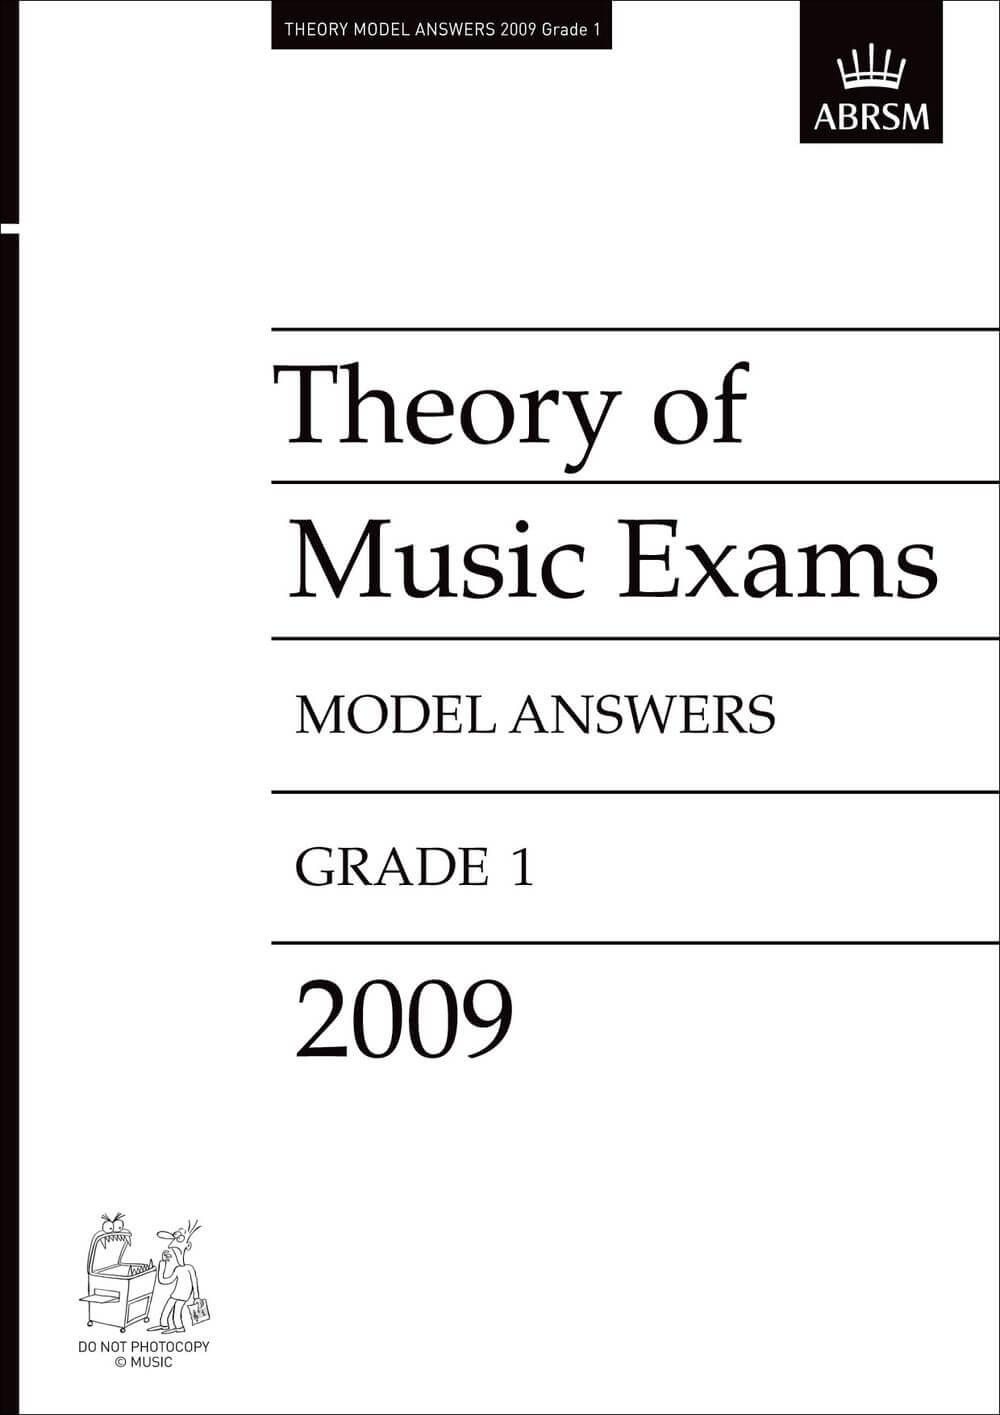 Theory of Music Exams Model Answers